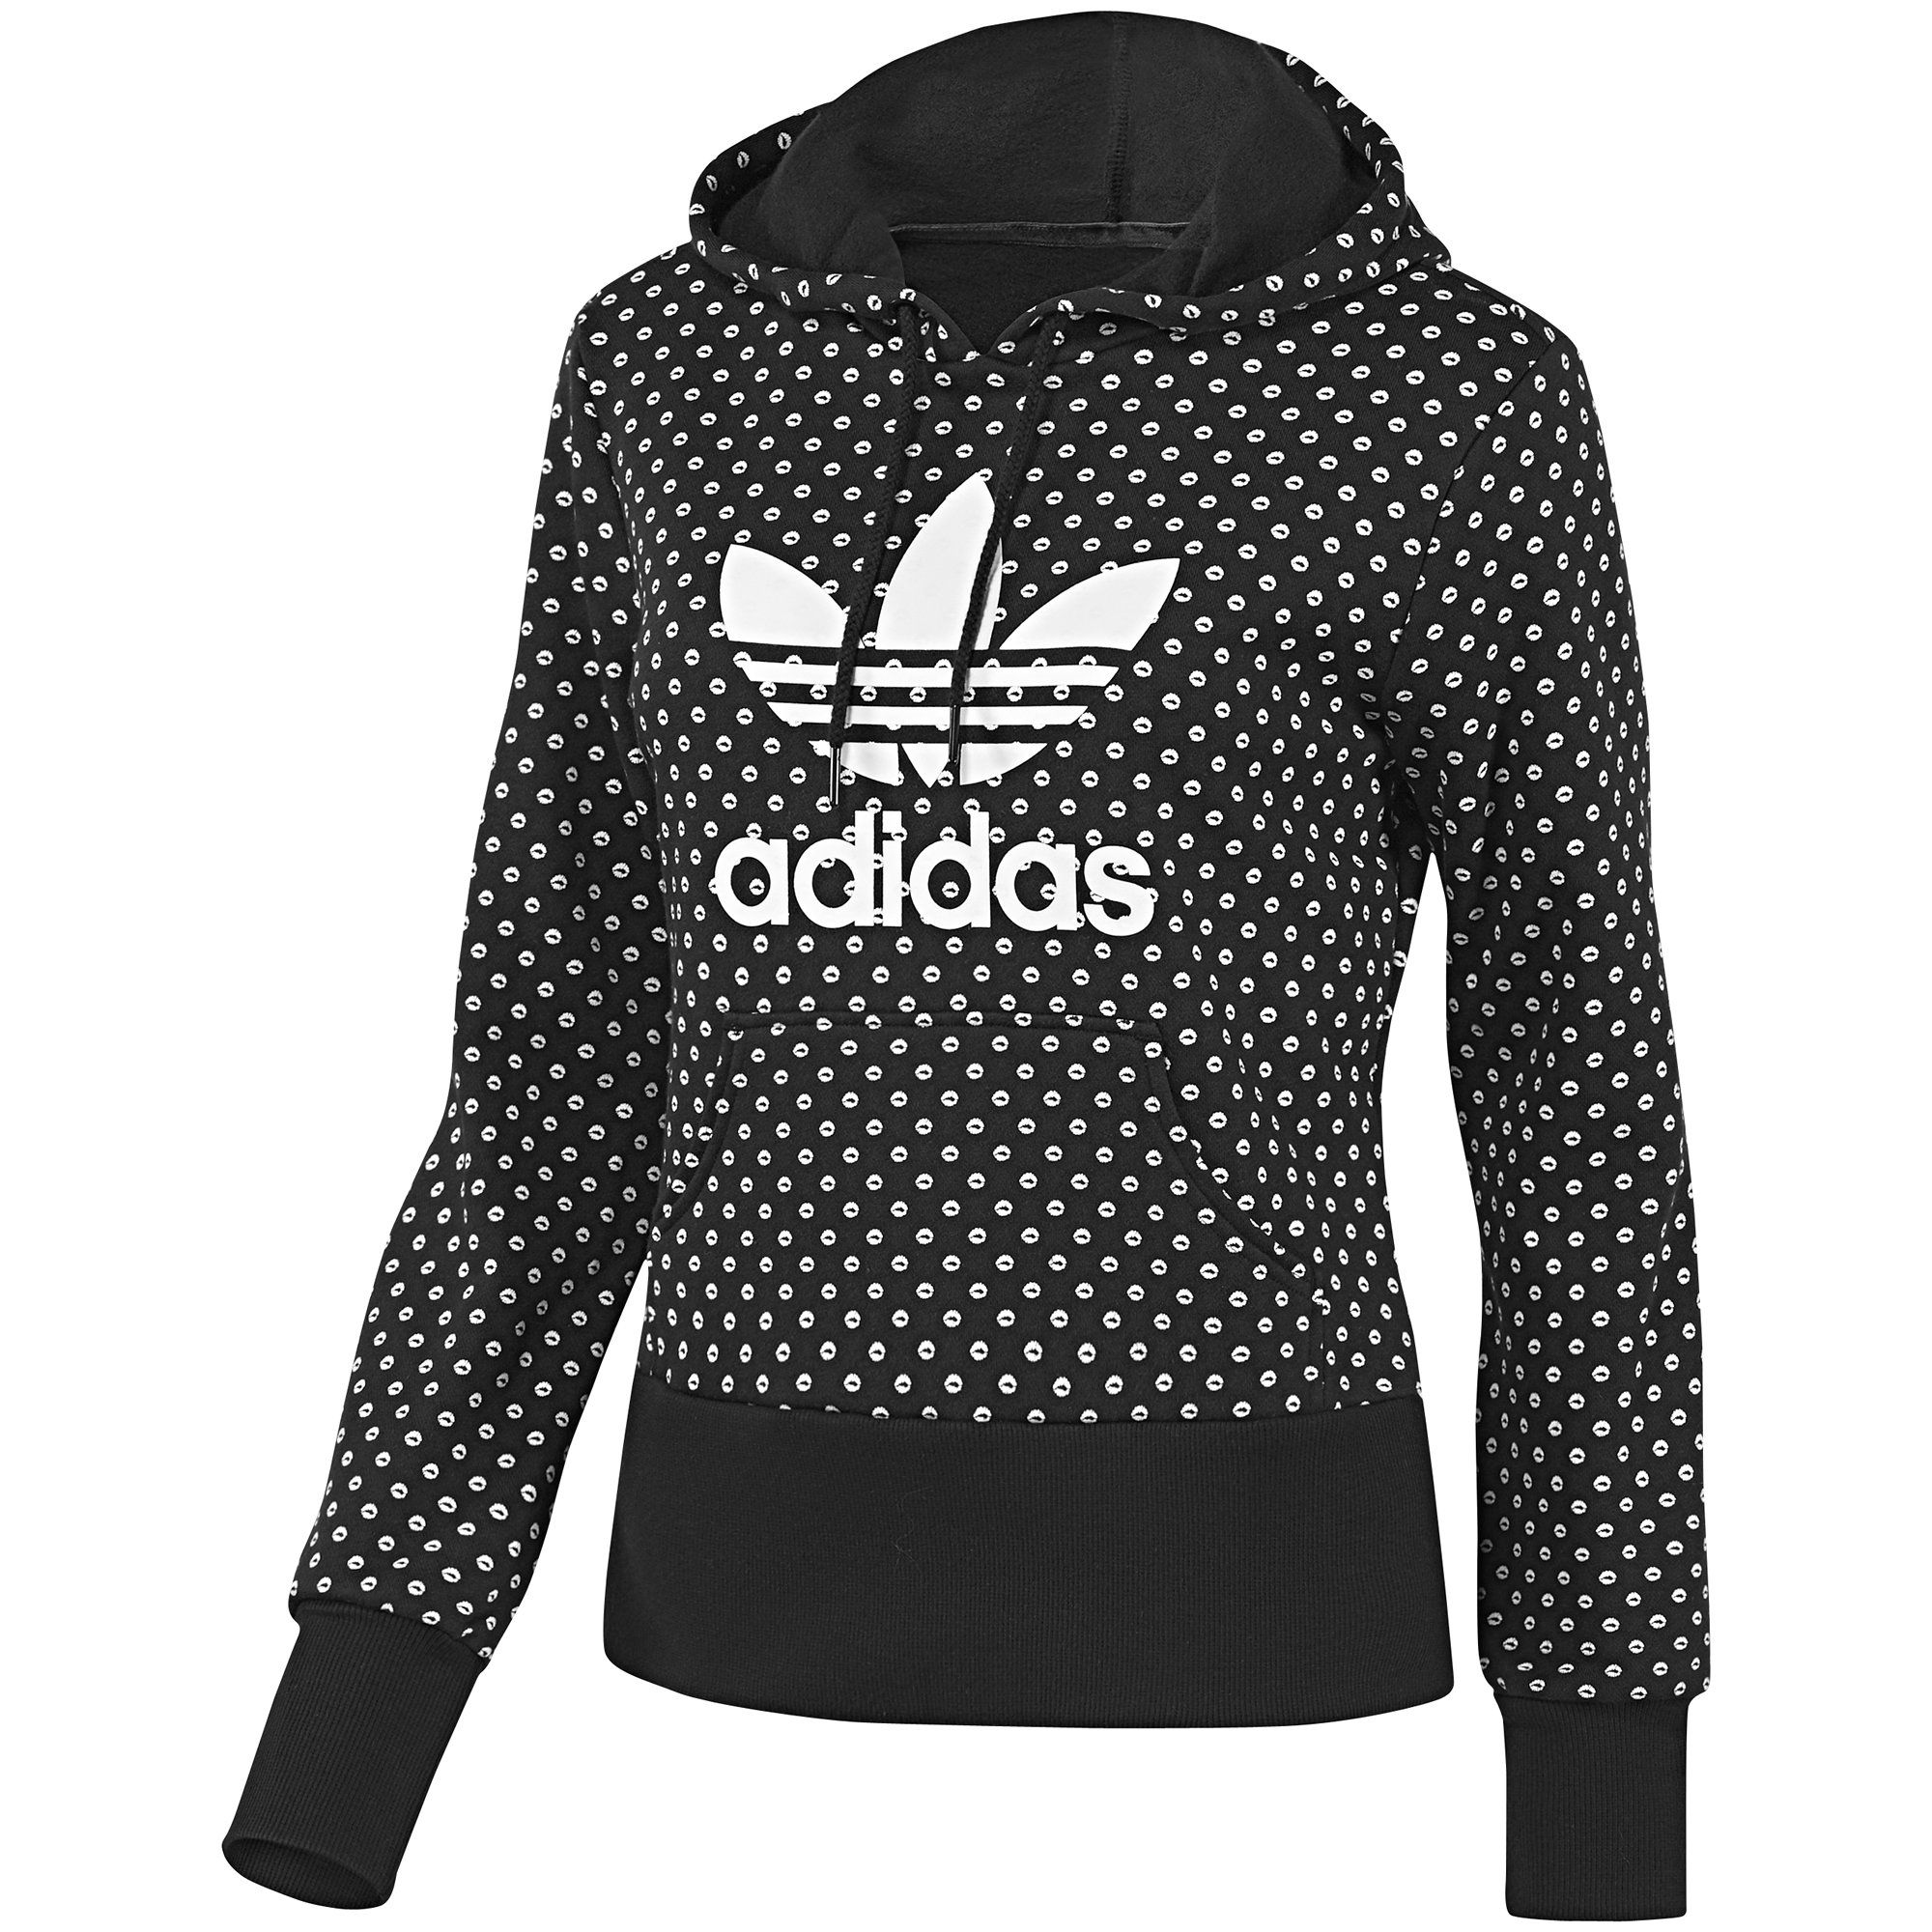 adidas pullover punkte